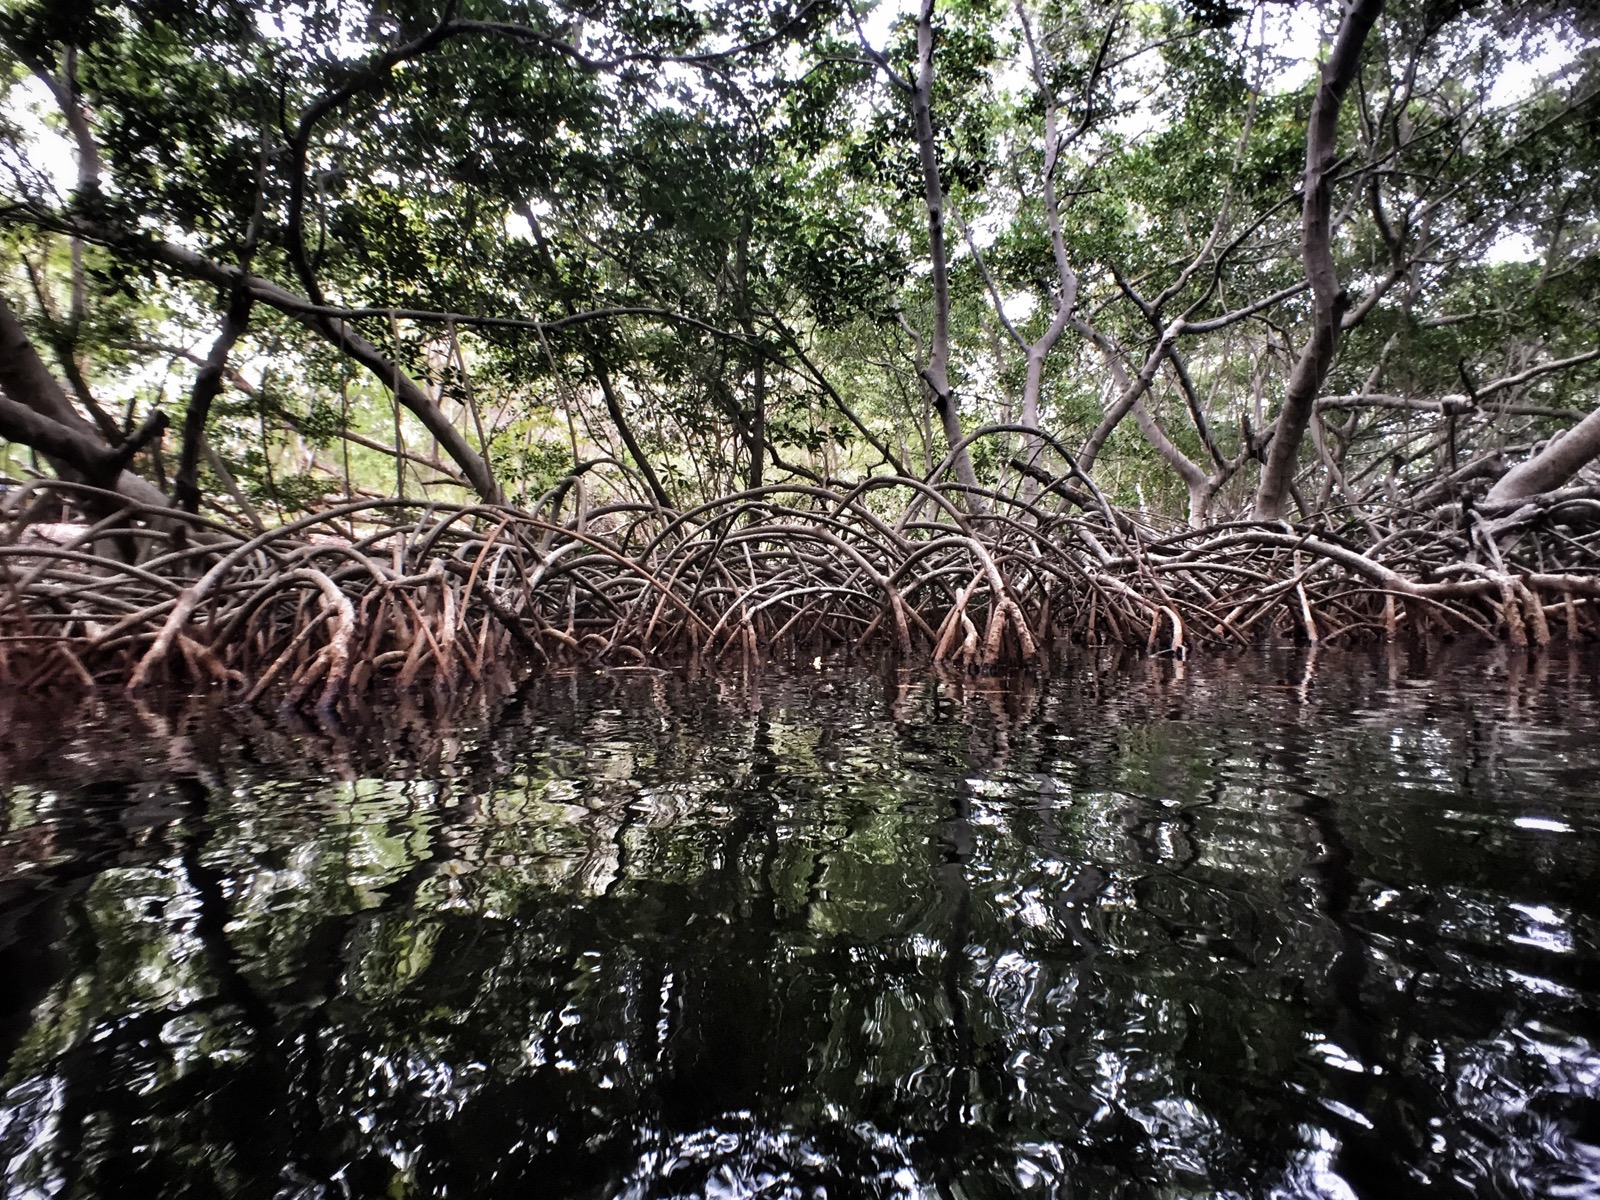 The mangrove, a beautiful sea water tree, saved by the islanders.